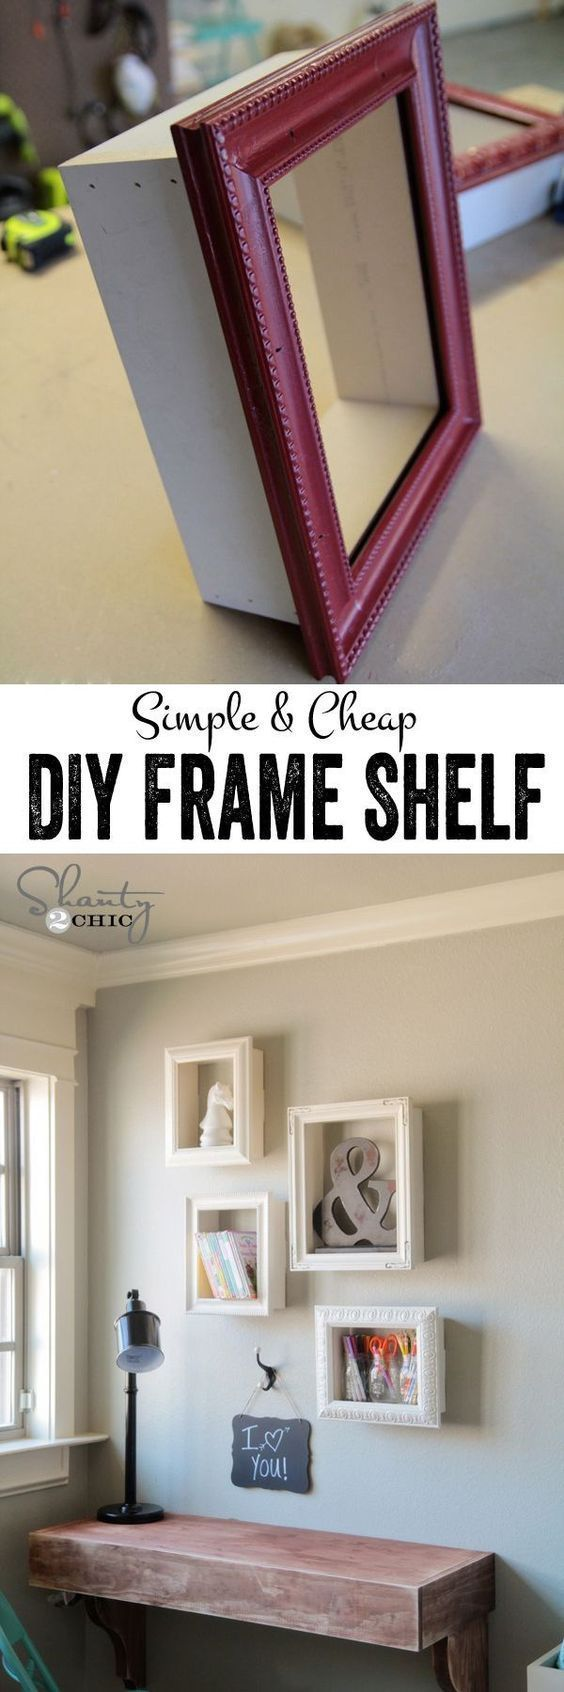 Photo of Budget friendly DIY home decor projects with tutorials